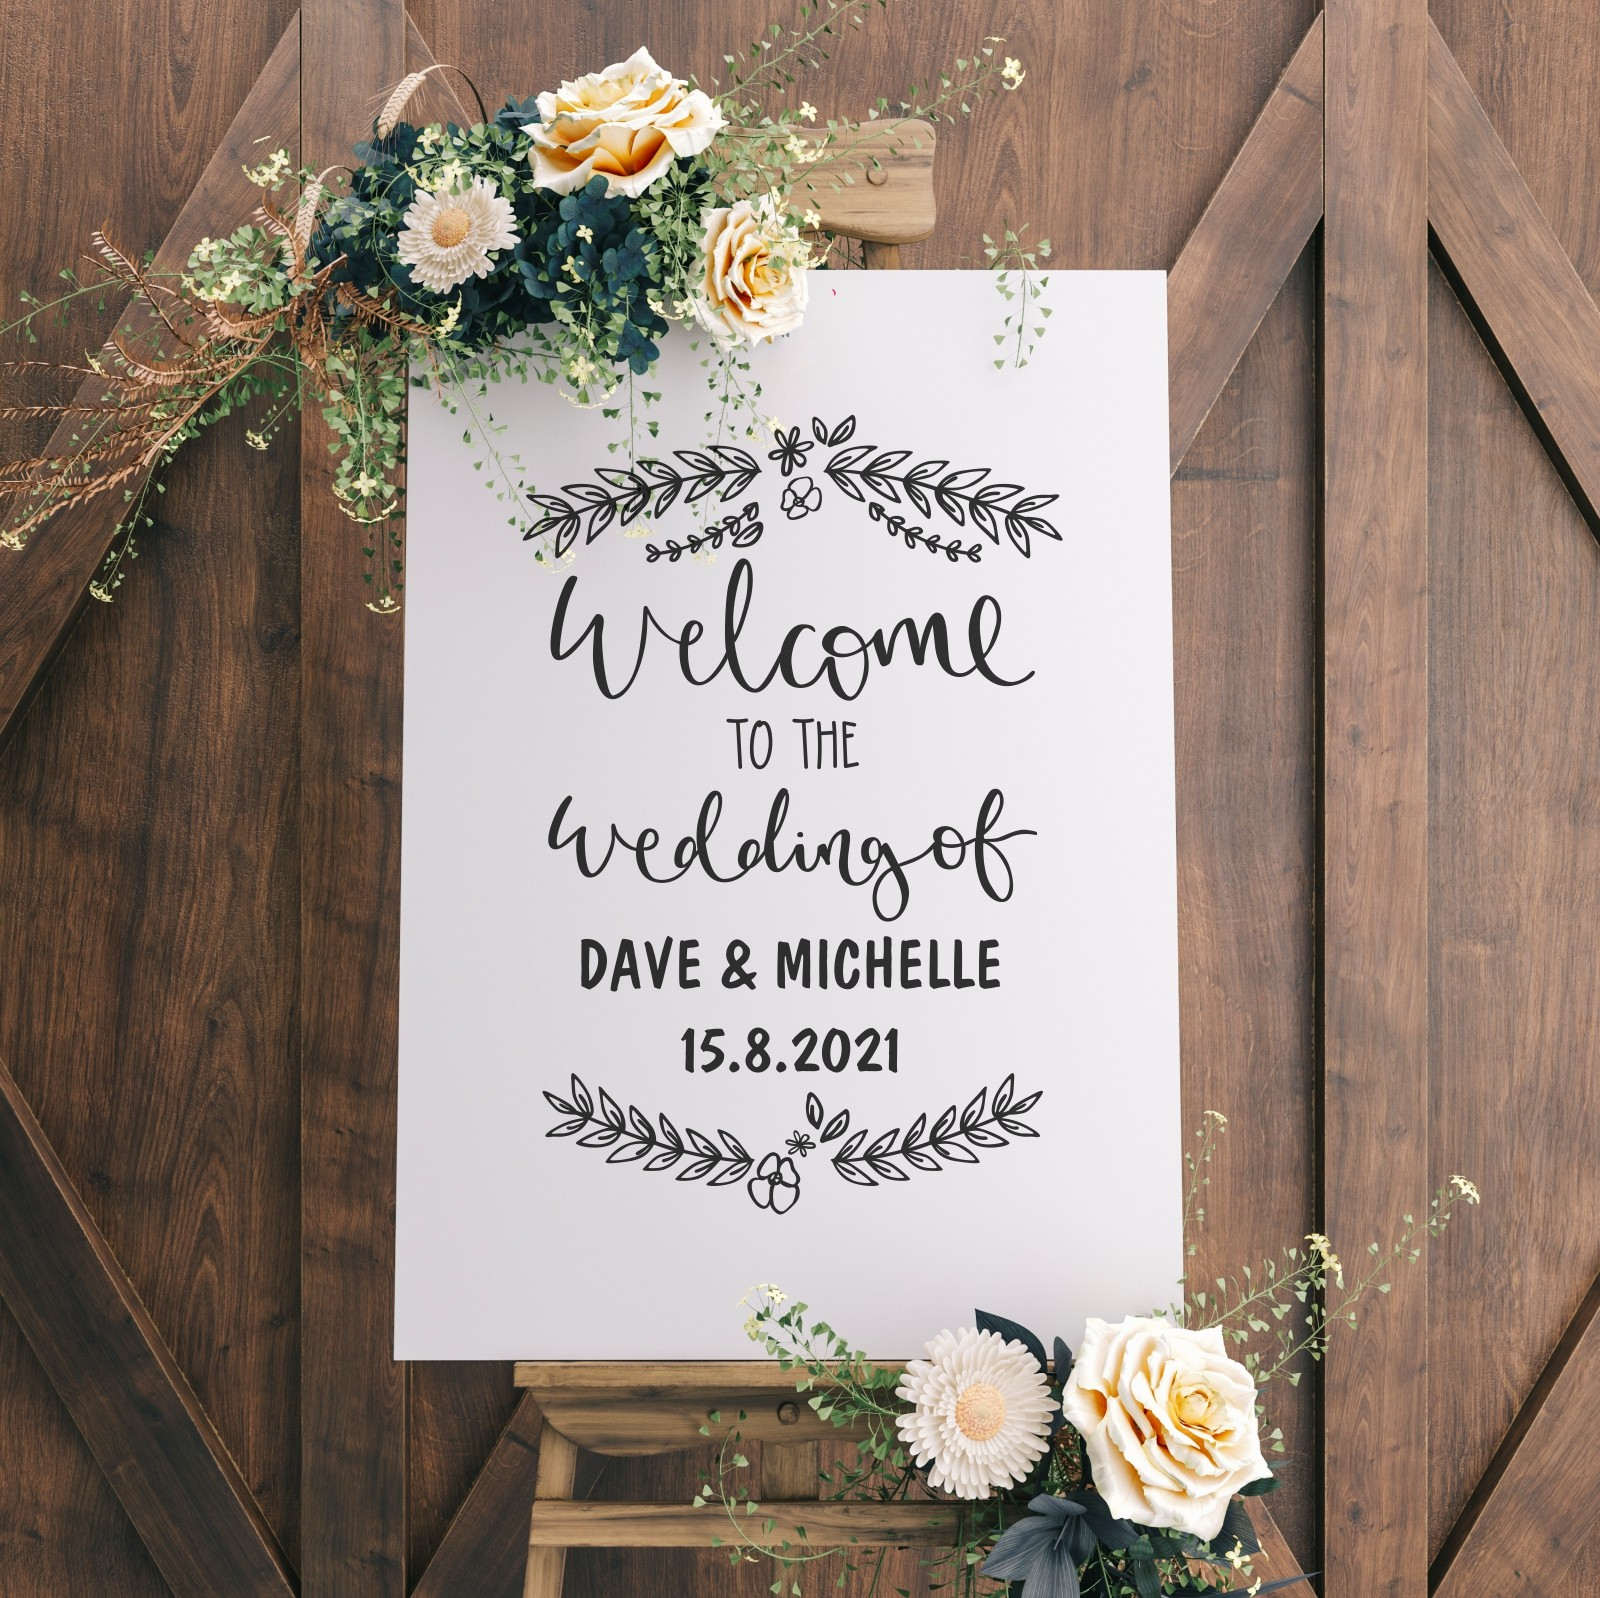 Personalised Welcome Wedding Of Sign - White with Black Printed